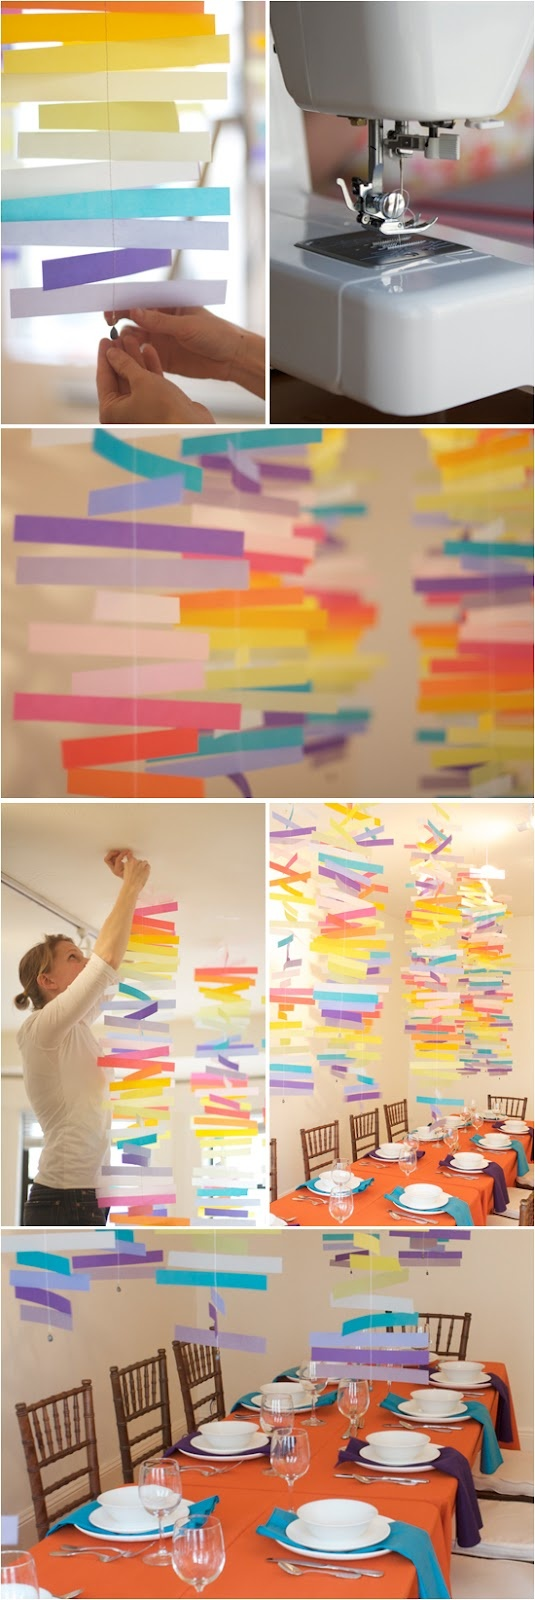 Colour mobiles: paper strips sewed together and then hung from the ceiling.